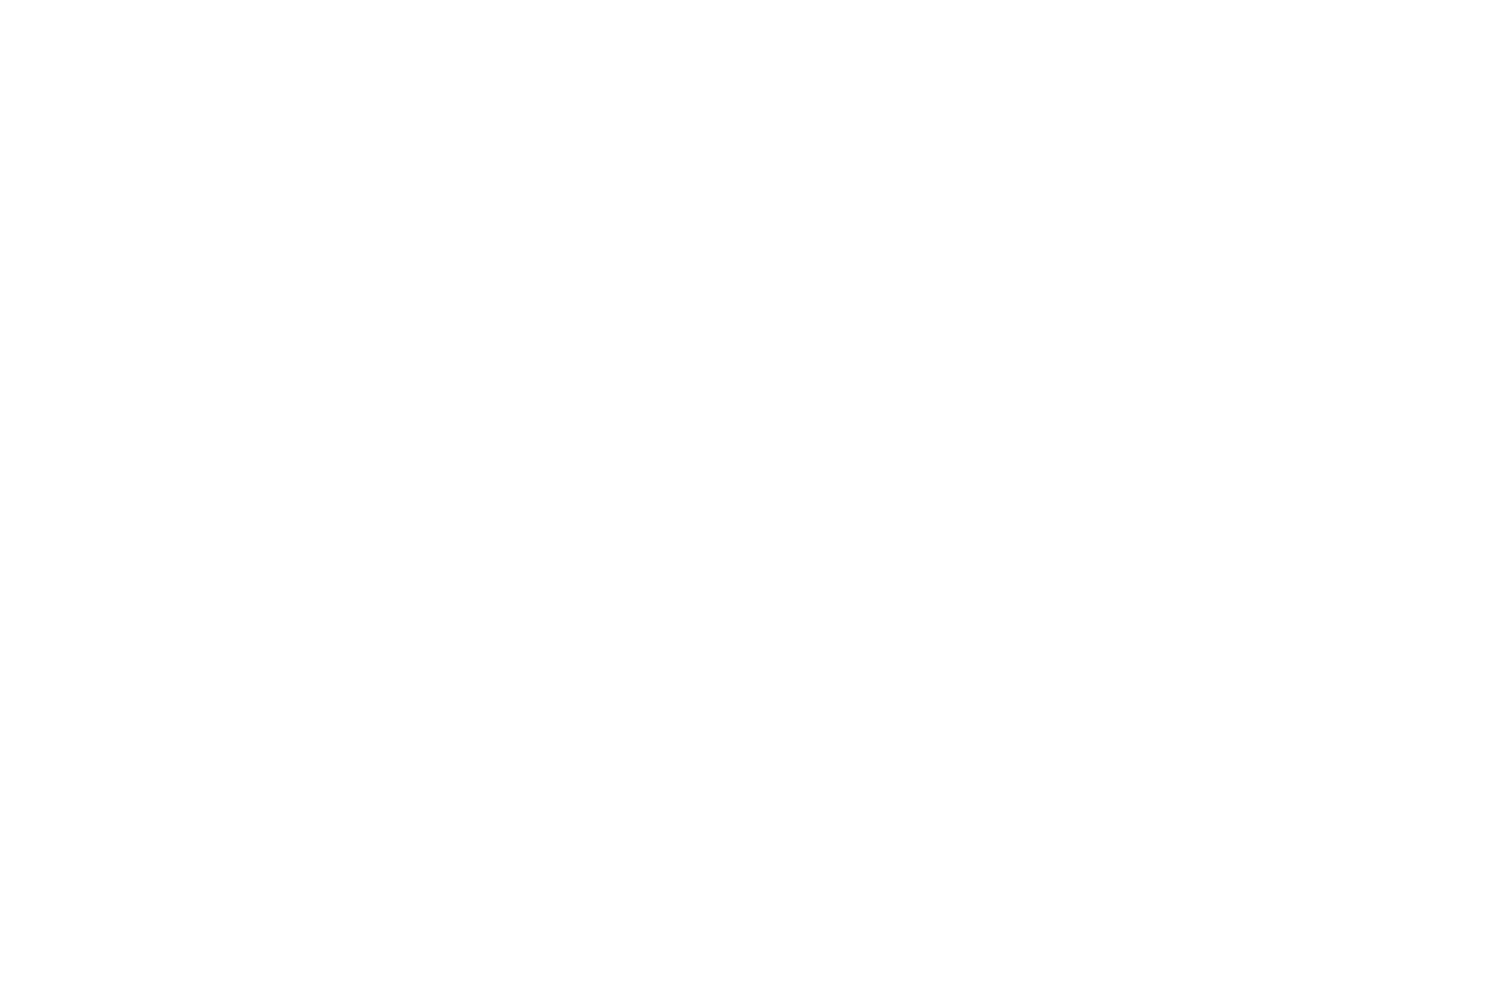 the bhakti yoga movement center